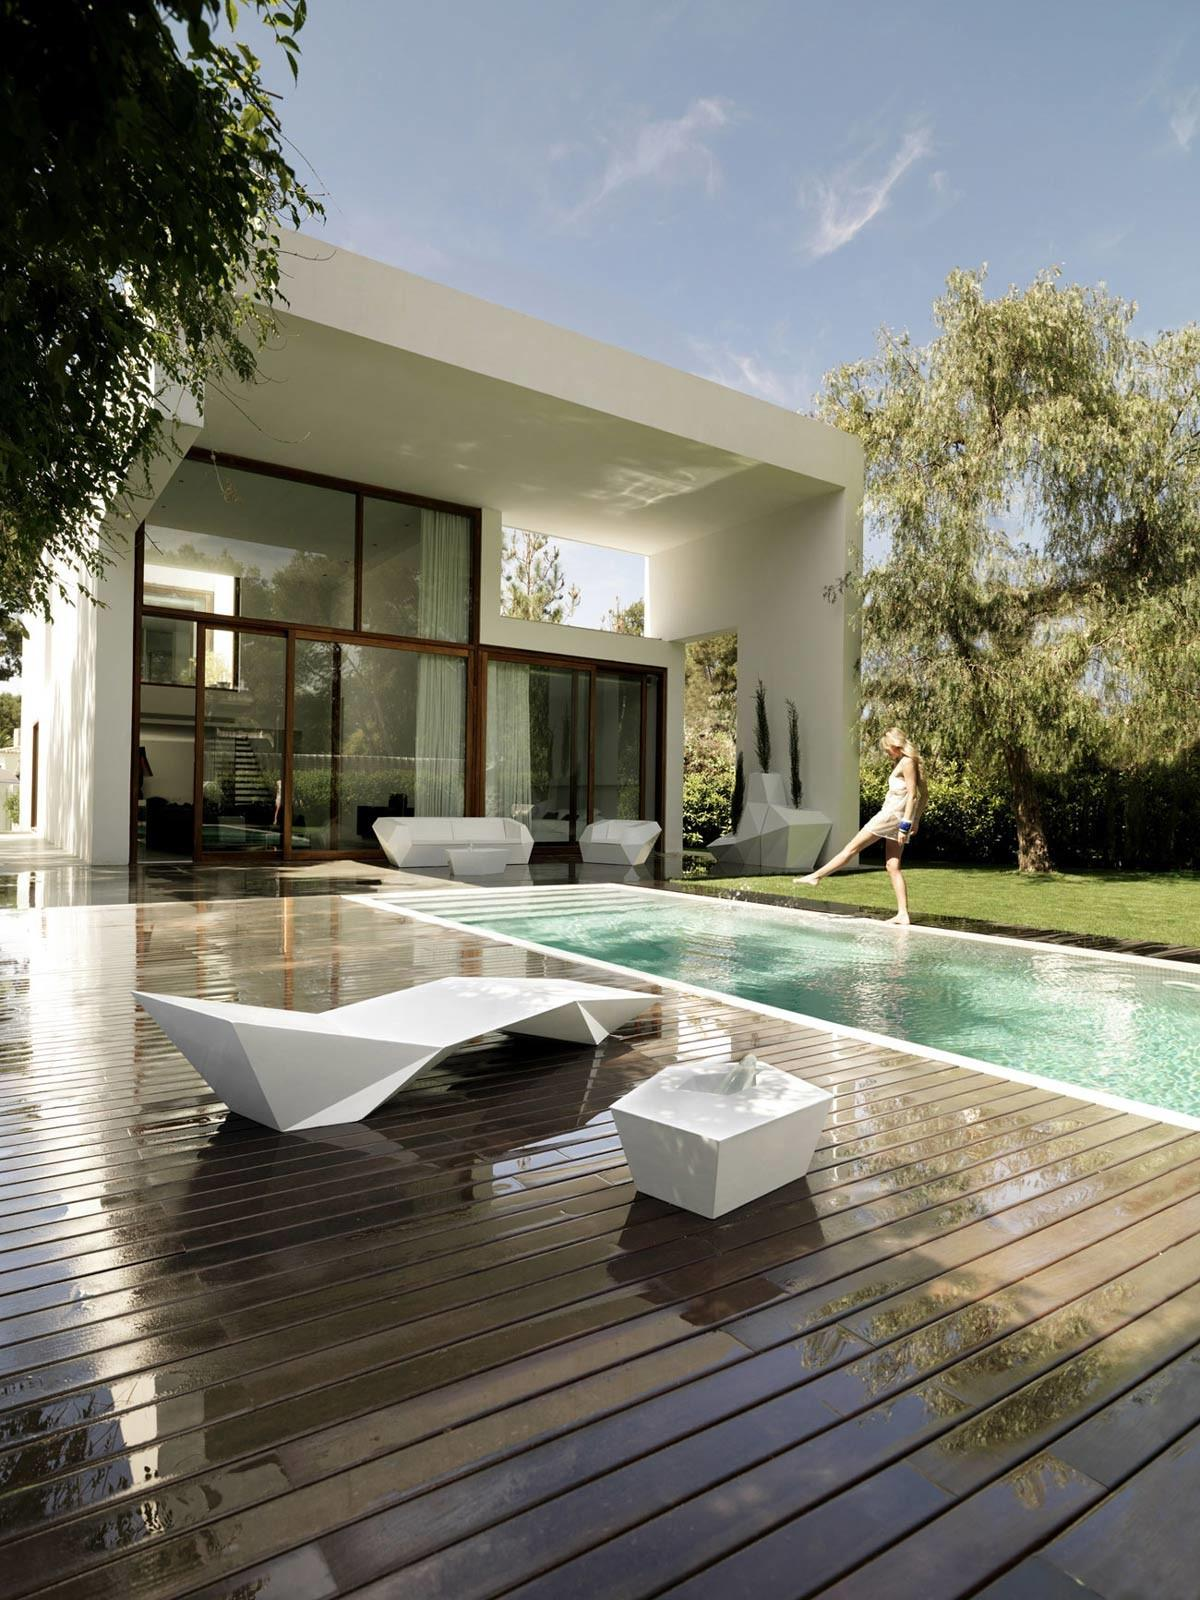 Wooden Terrace Outdoor Swimming Pool Contemporary Home